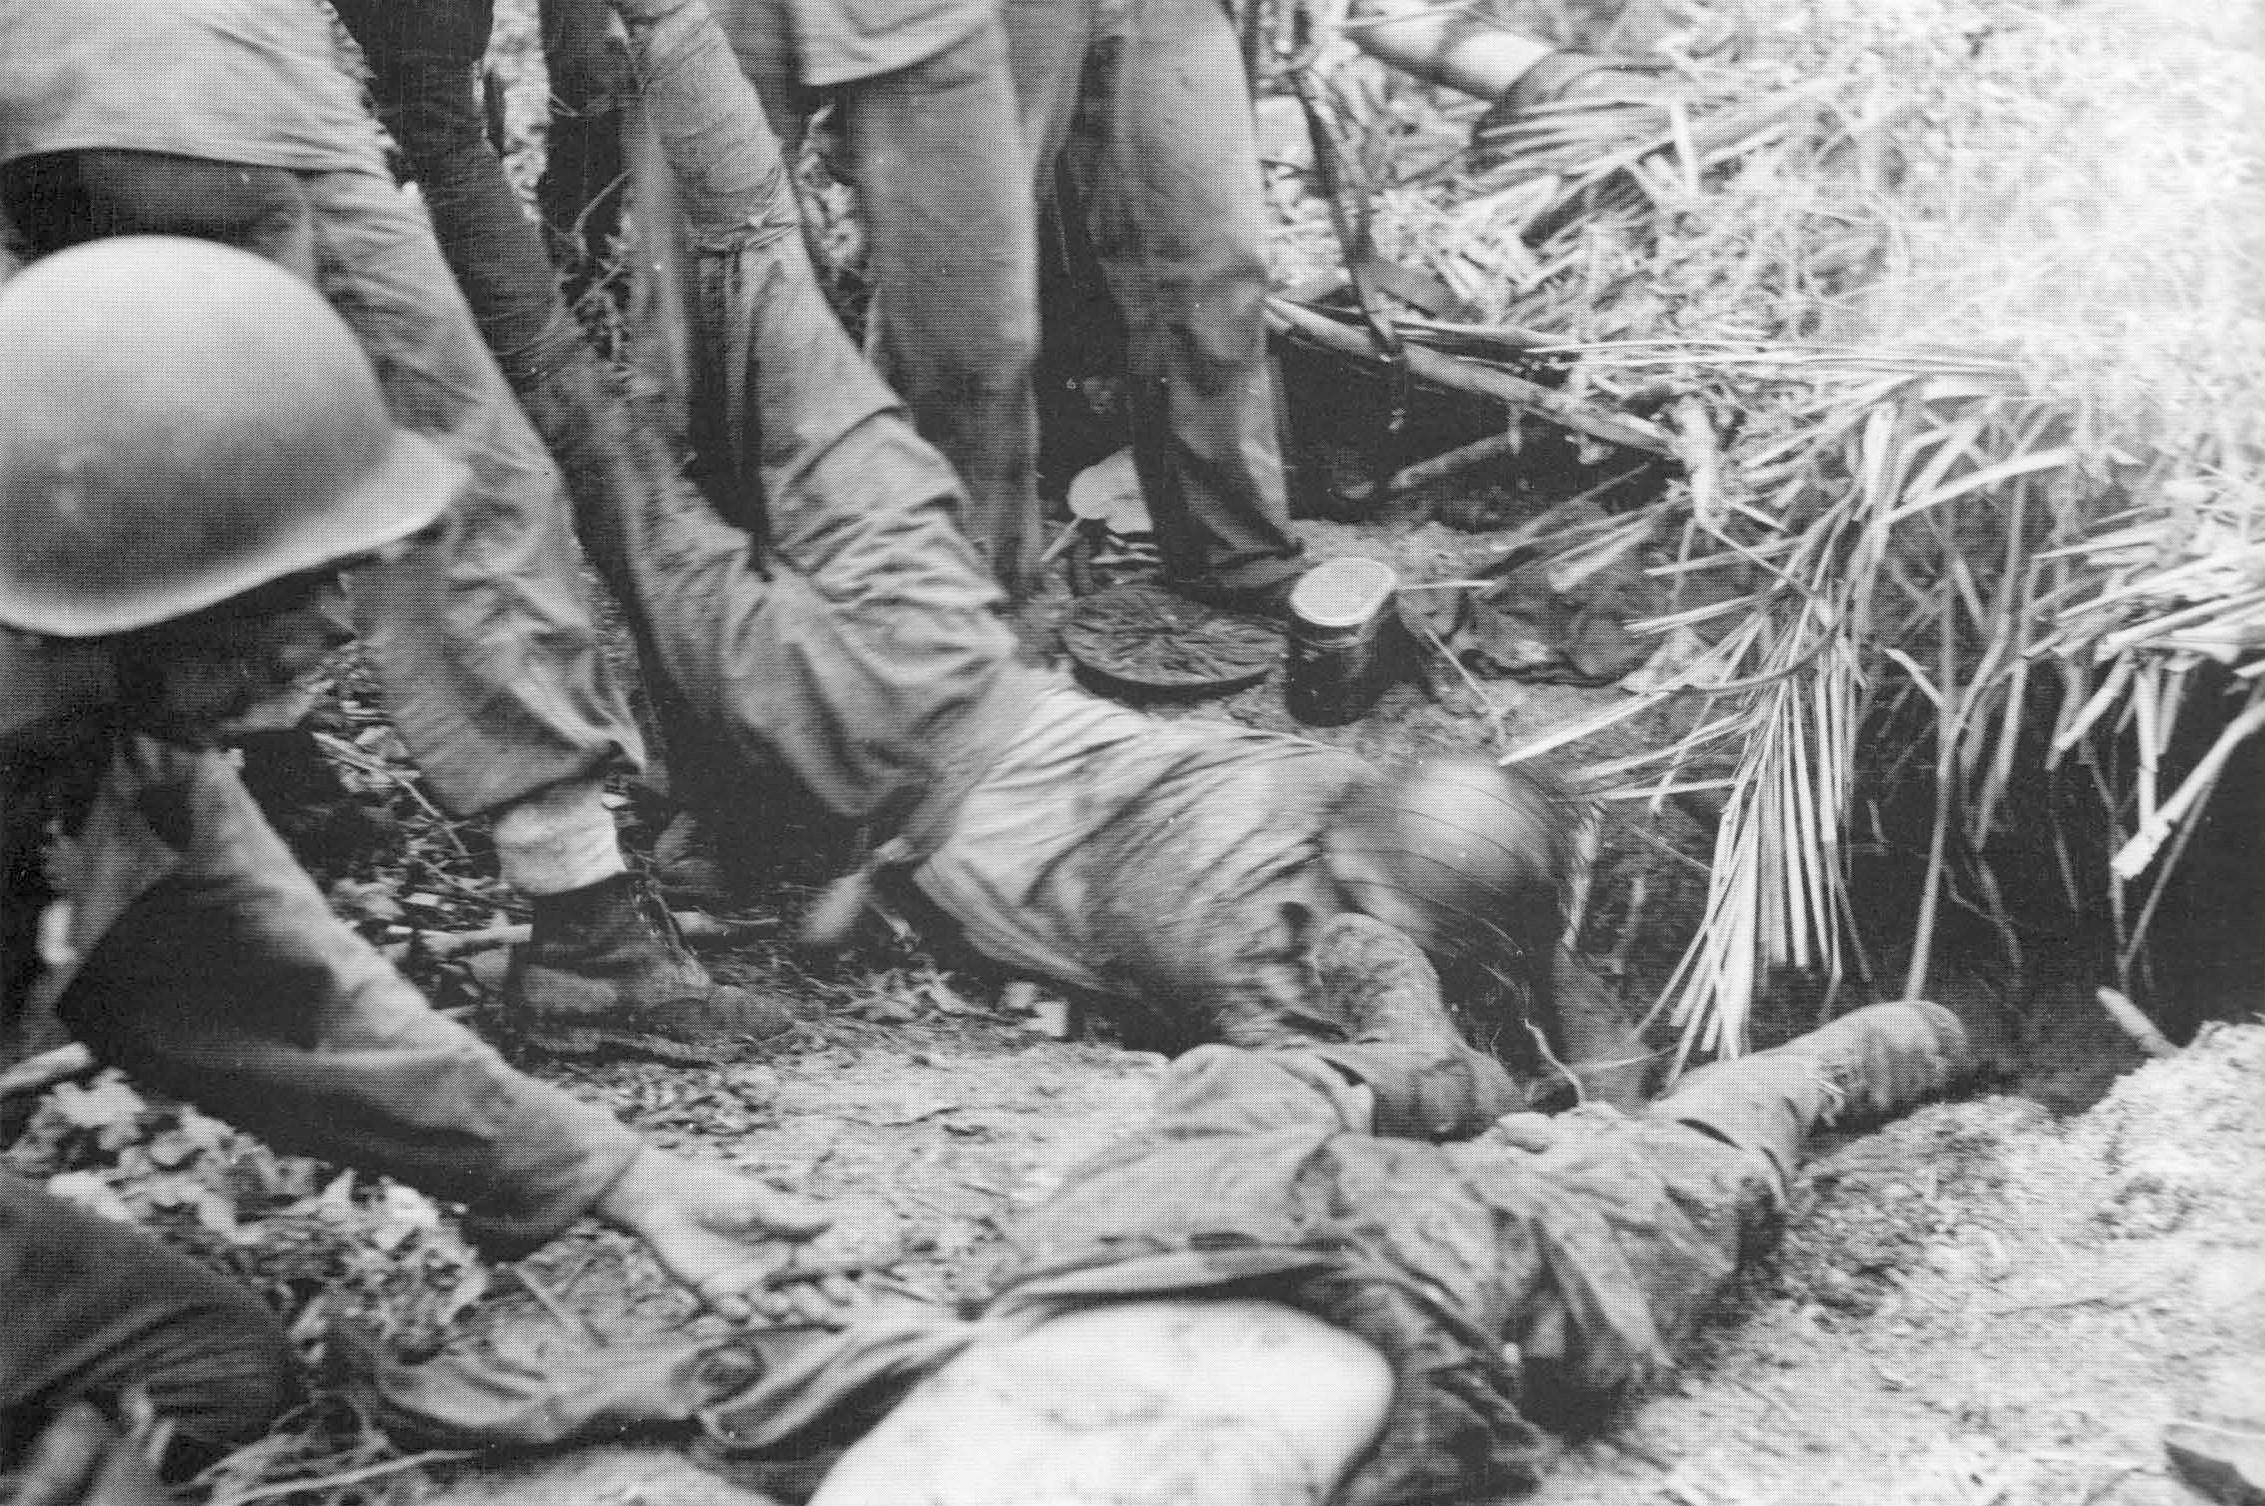 U.S. Marines drag dead Japanese soldiers from their bunker near Point Cruz on Guadalcanal in November, 1942.